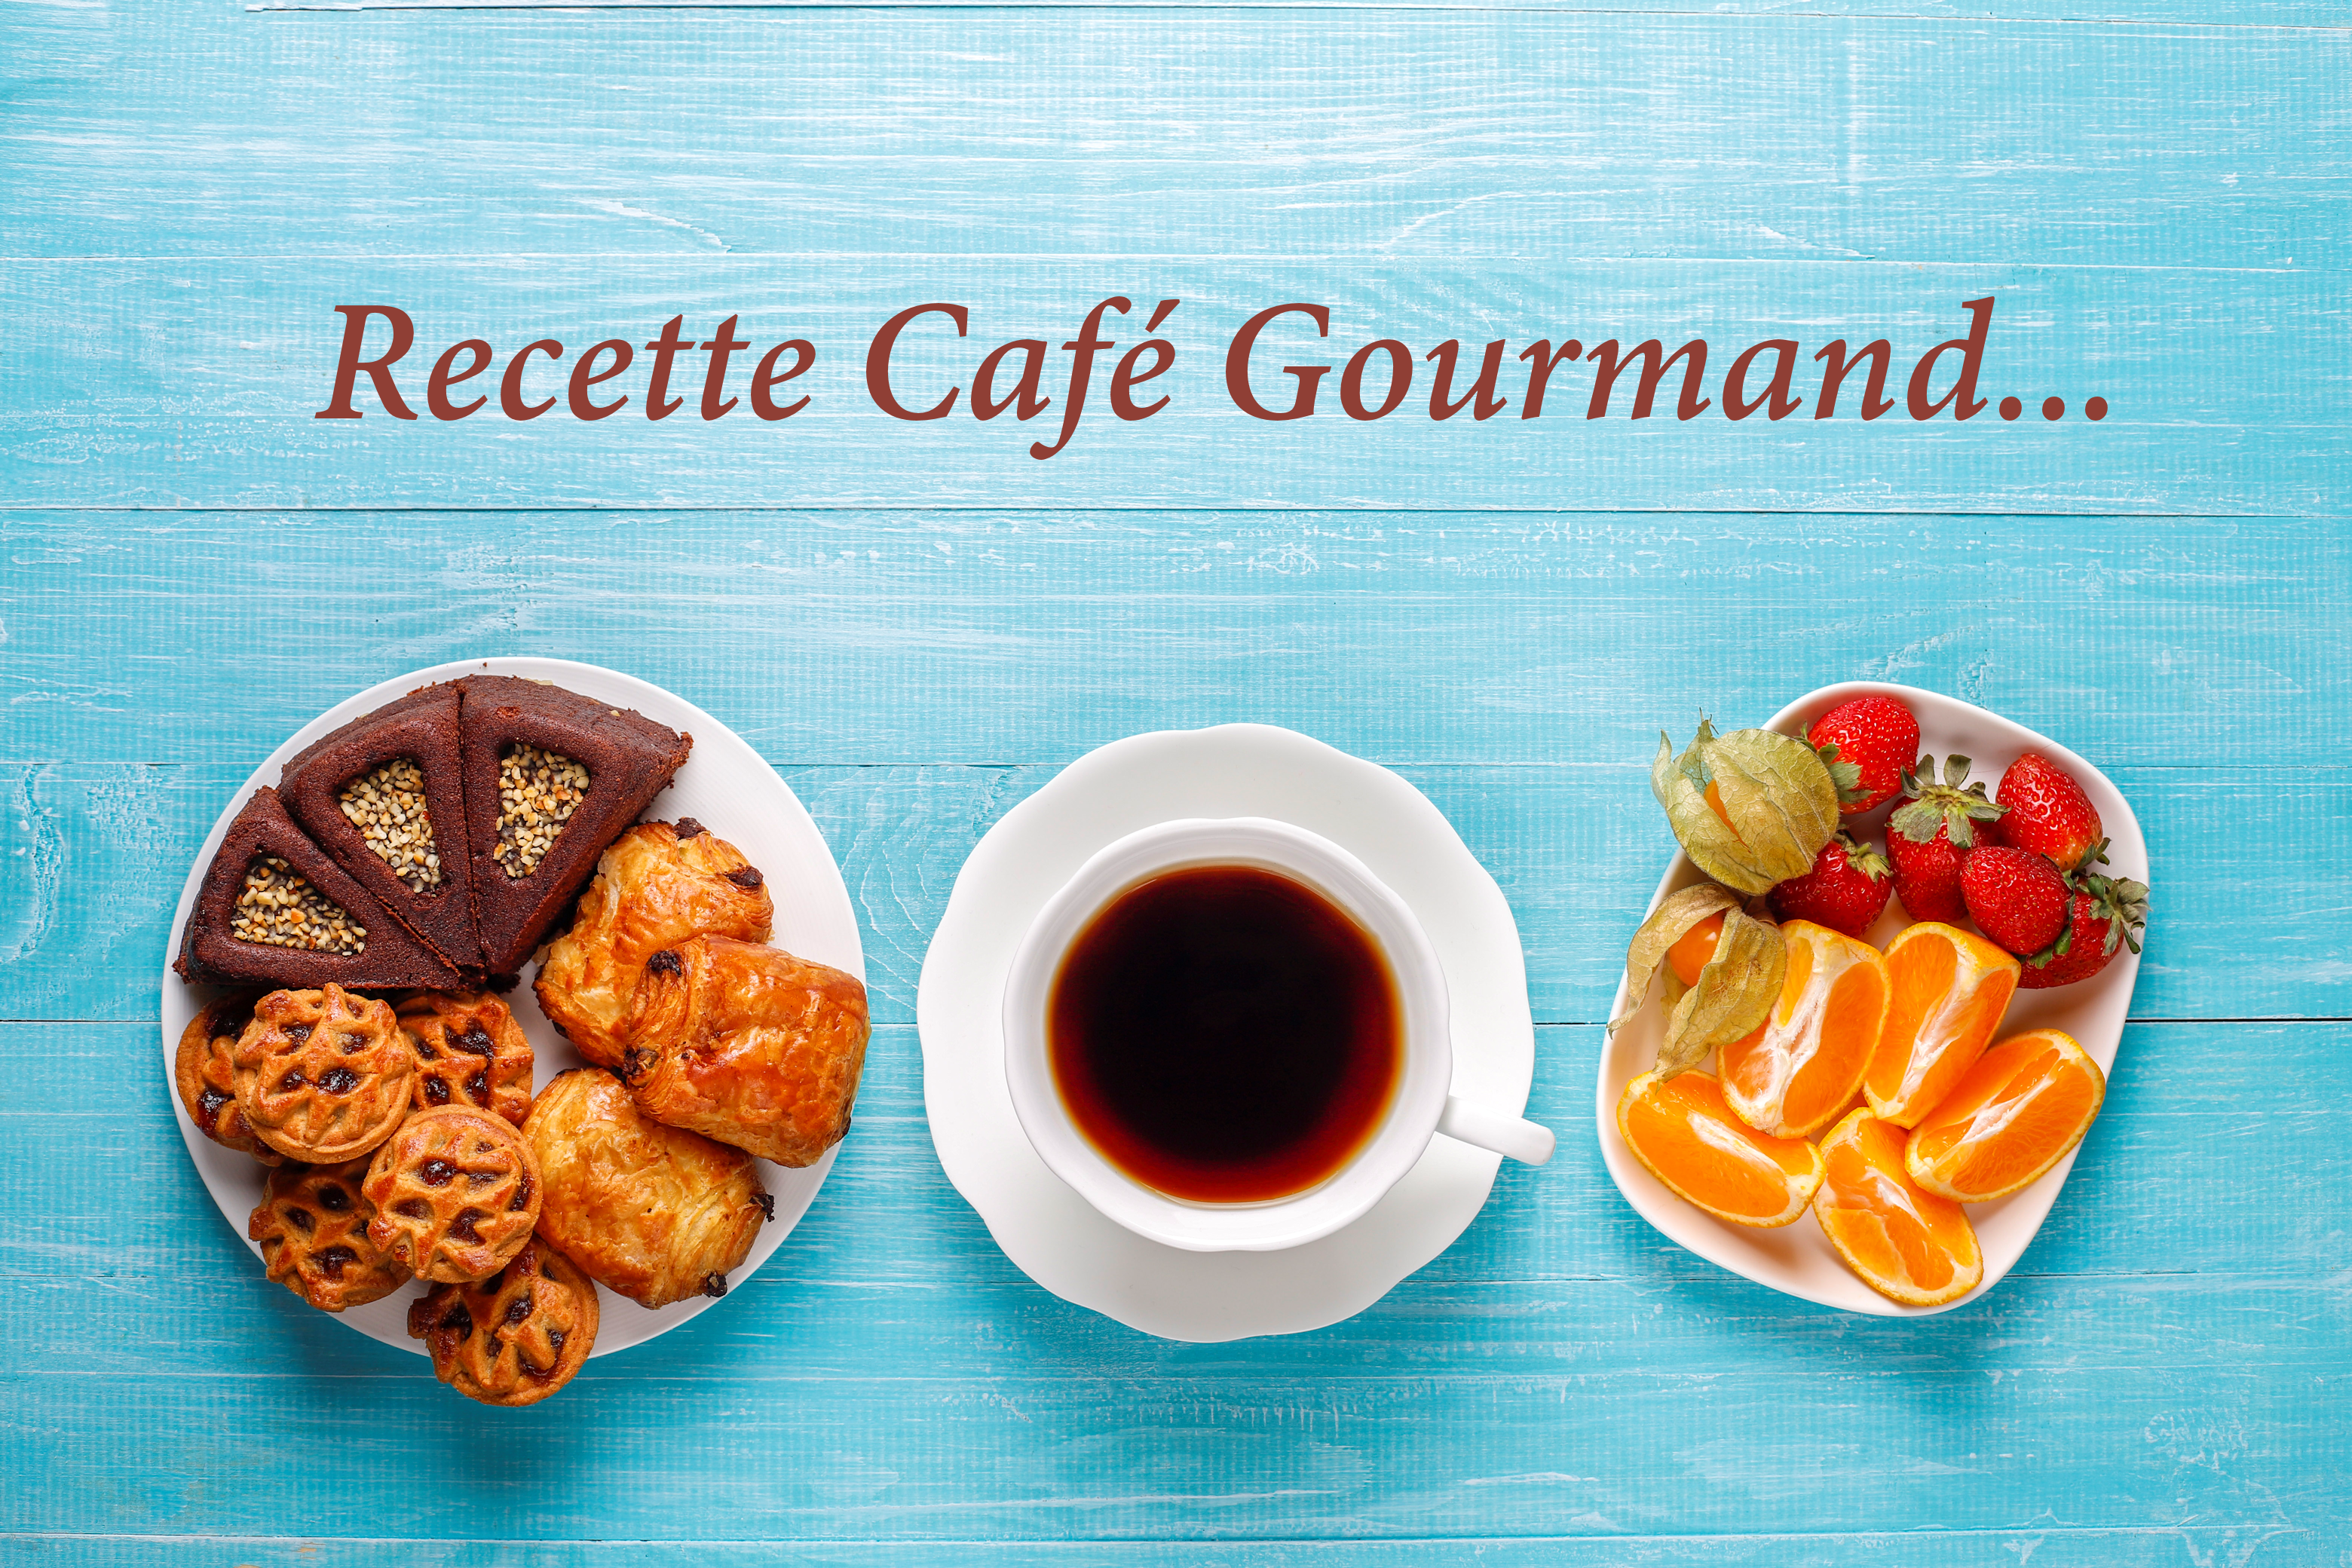 Café gourmand : espresso + financier + rocher + brochette de fruits